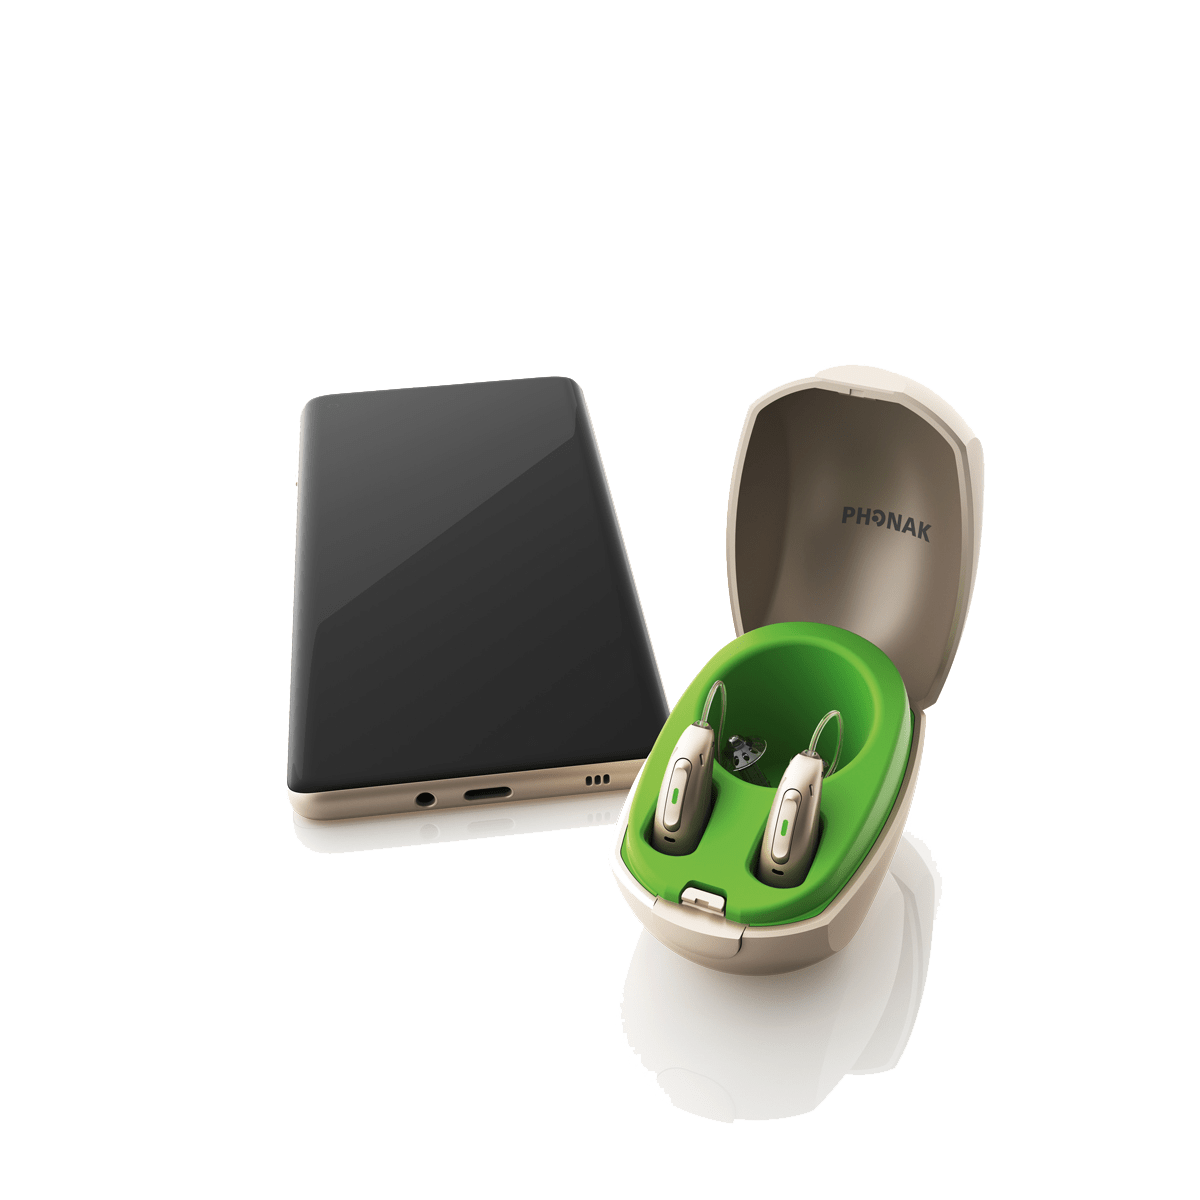 Wireless charger case for hearing aids